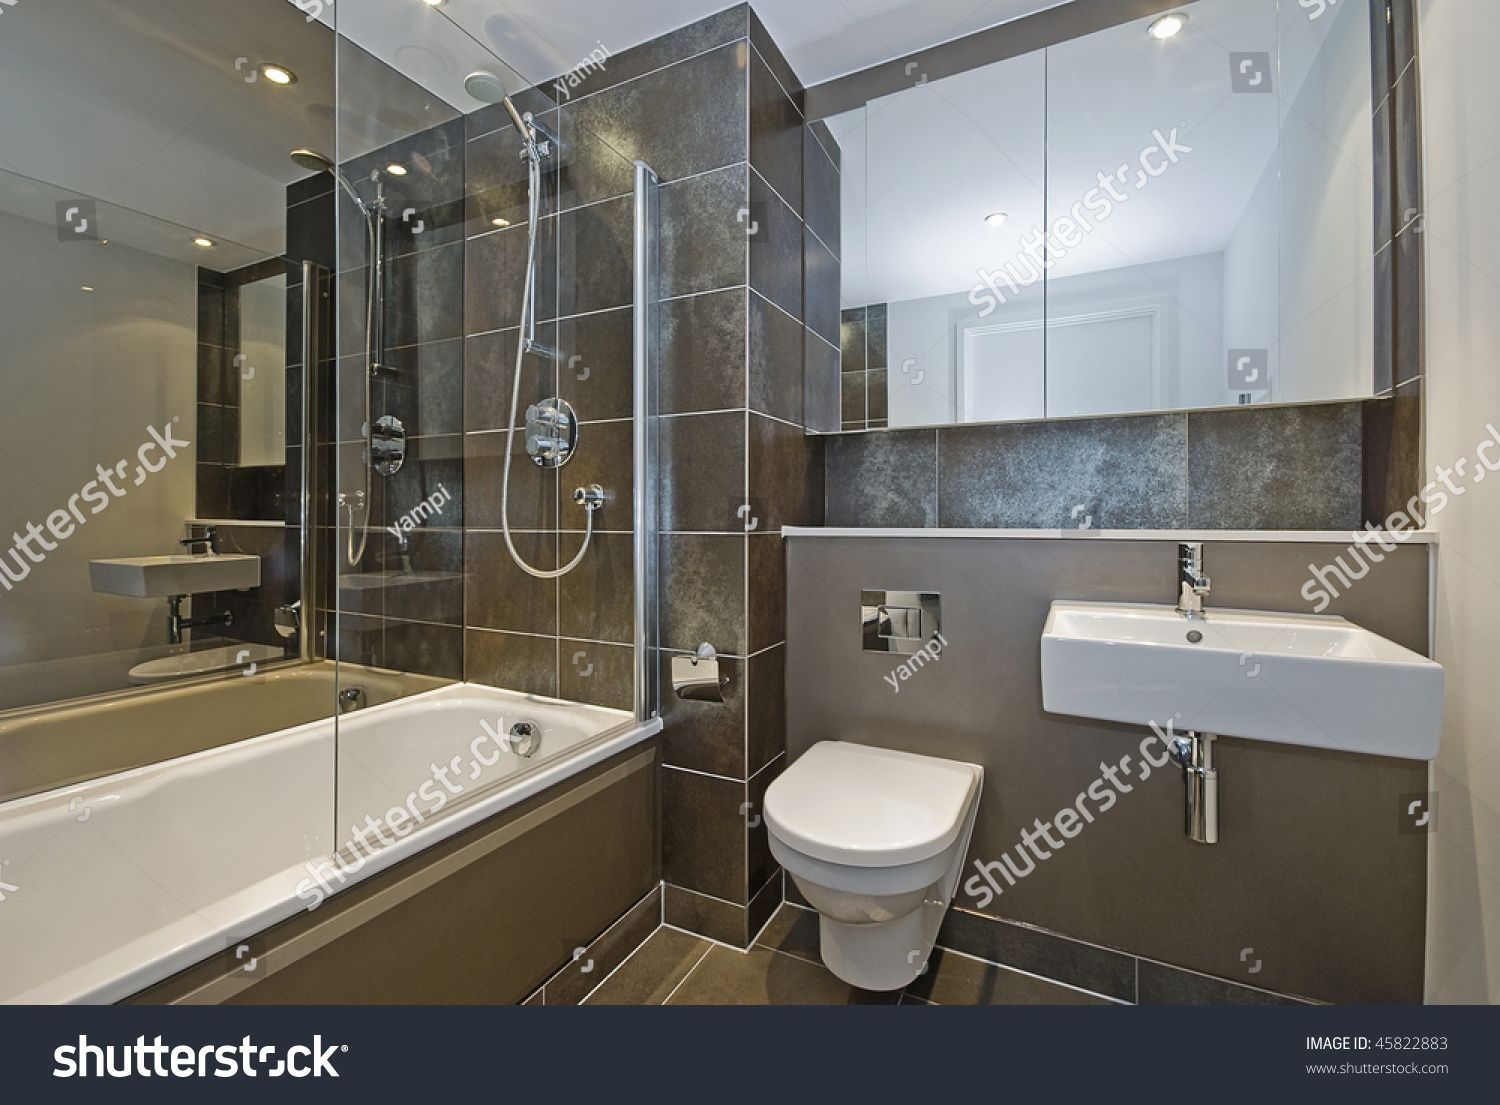 Tile bathroom ceiling pictures httpcreativechairsandtables tile bathroom ceiling pictures dailygadgetfo Image collections